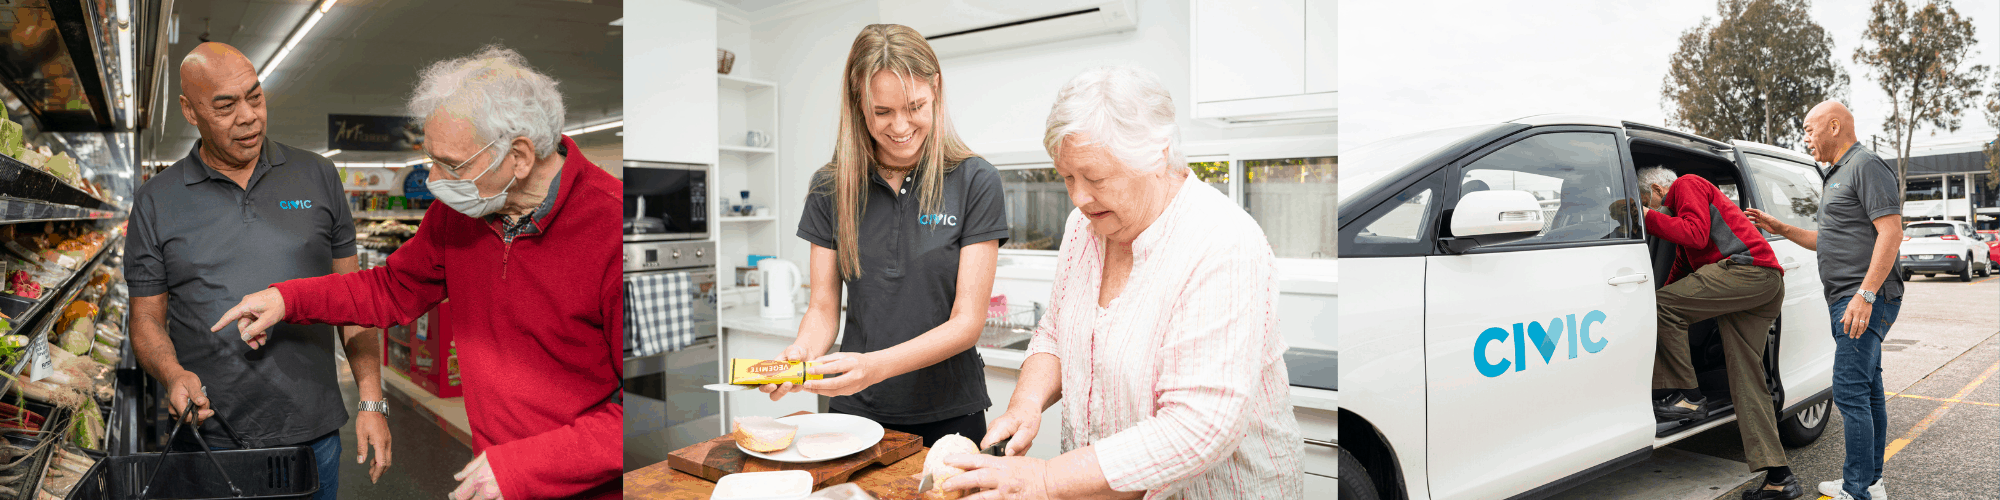 Flexible Aged Care Services Civic